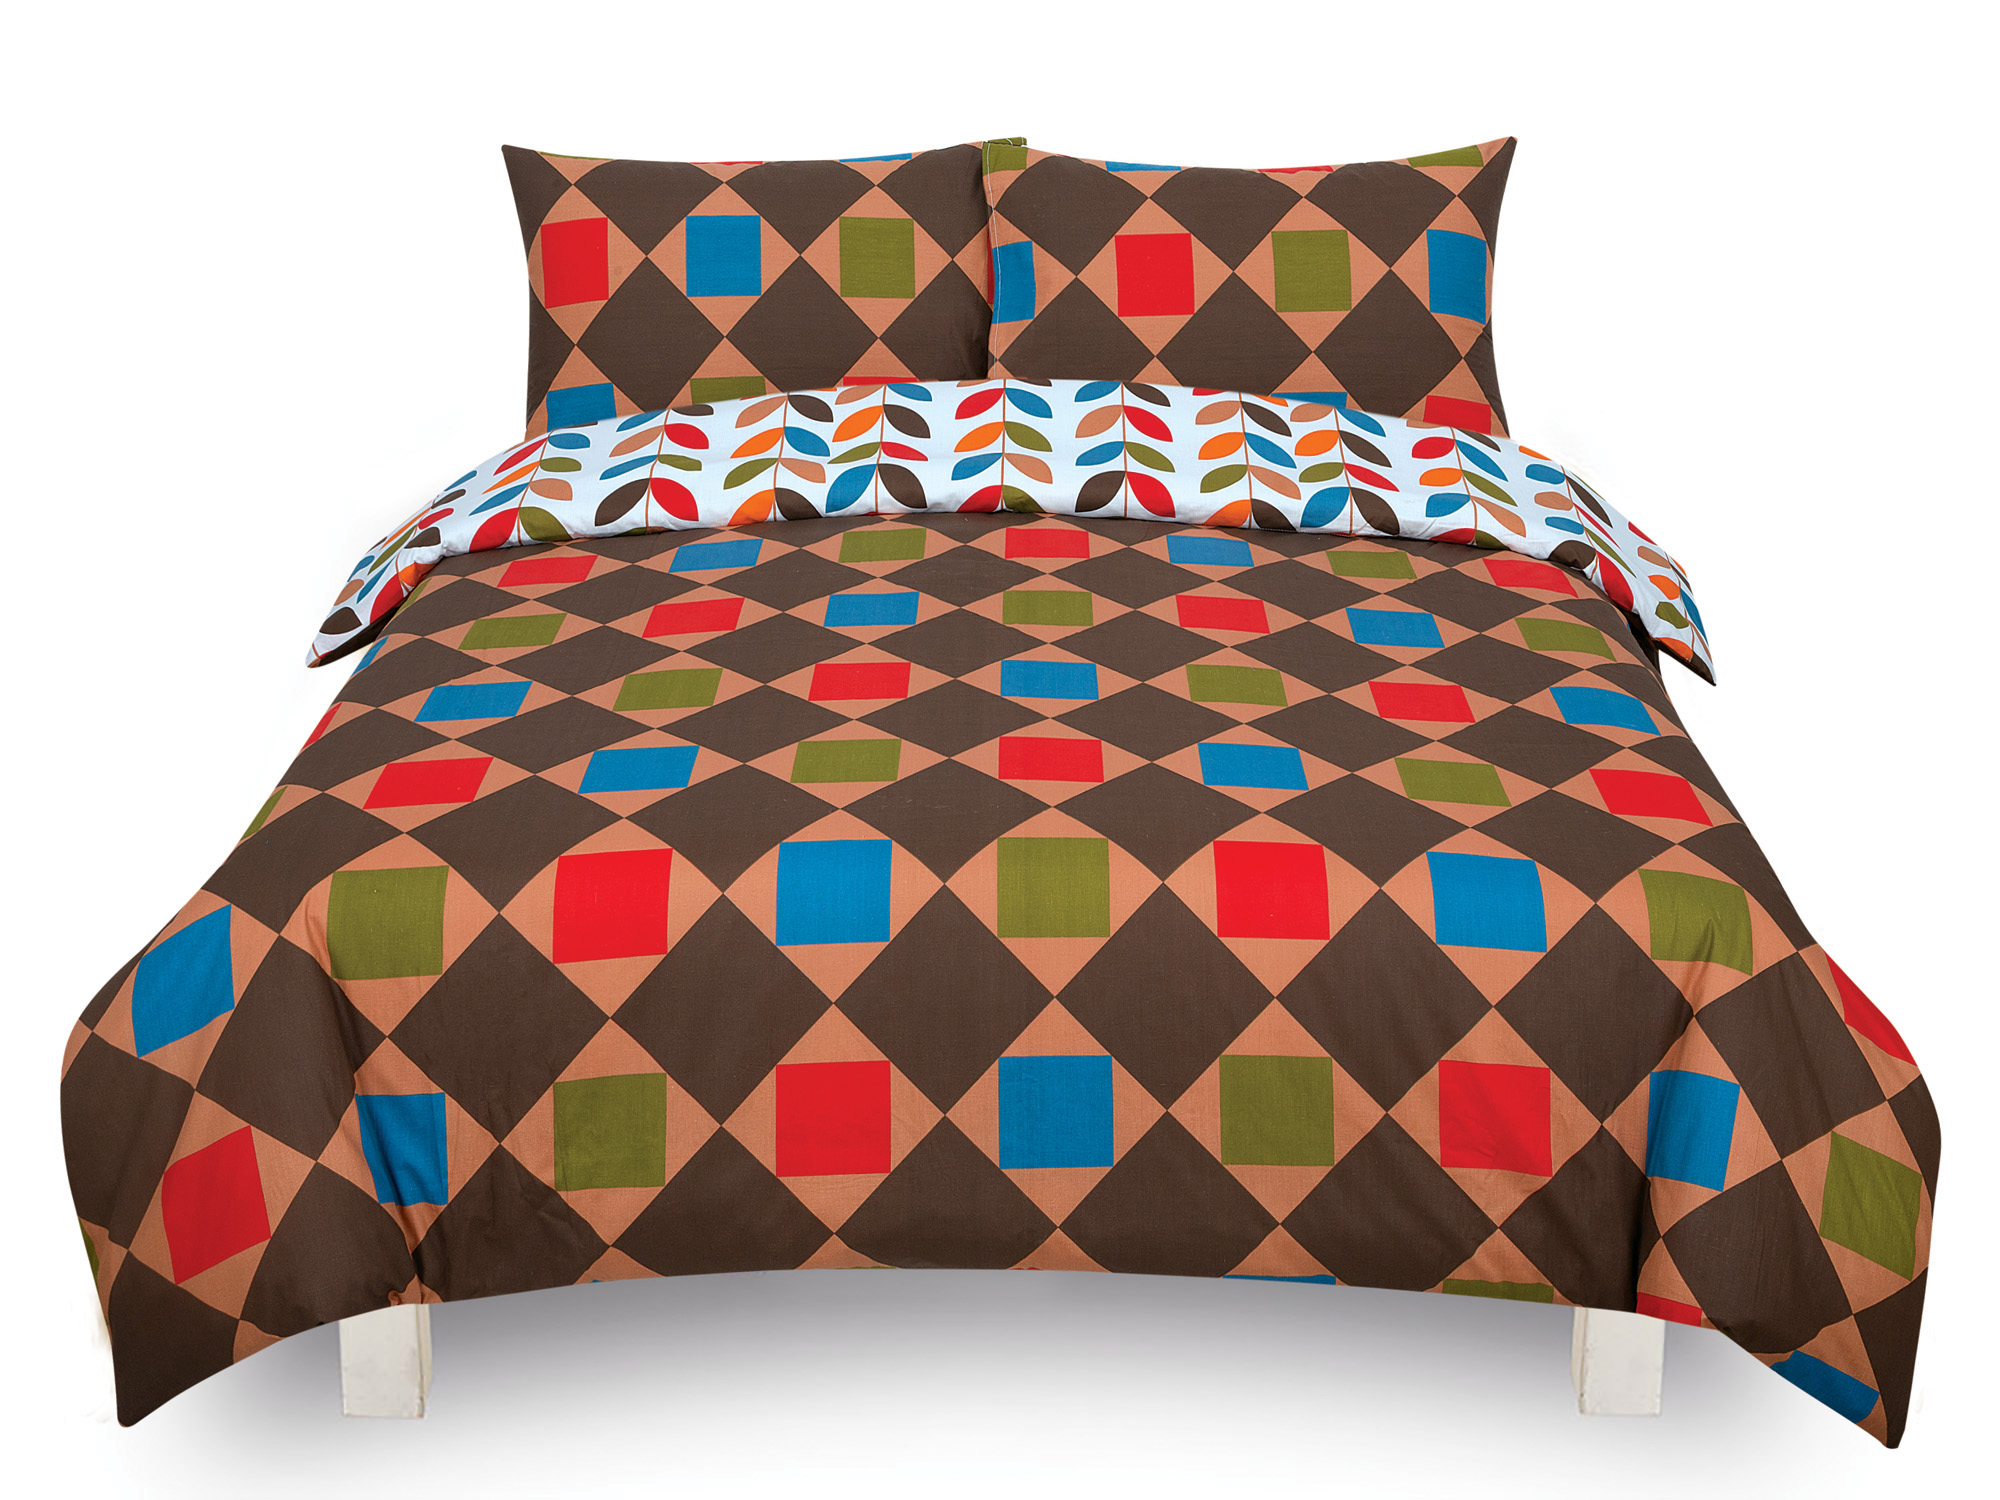 Duvet-Cover-with-Pillow-Case-Quilt-Cover-Bedding-Set-in-Single-Double-King-size miniatura 21